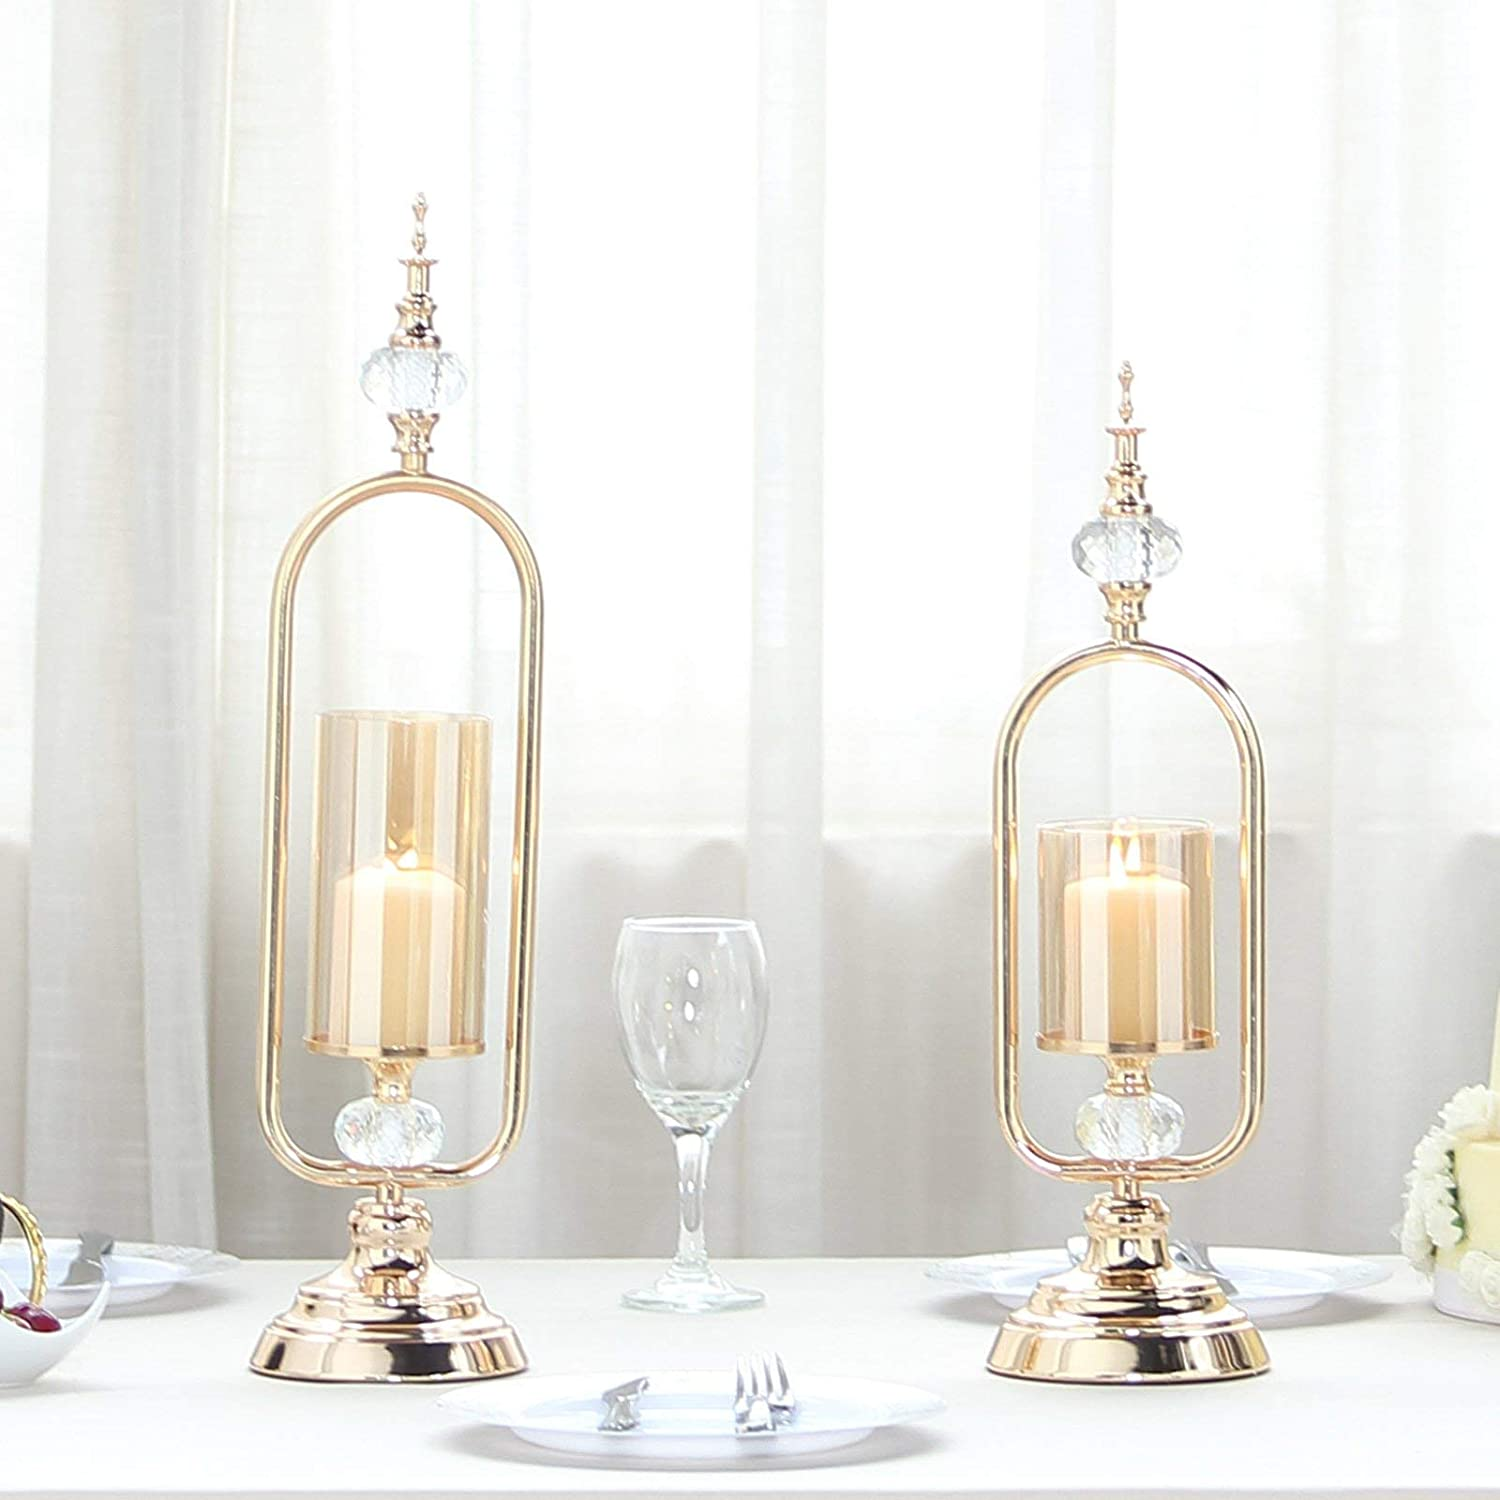 Gold Hurricane Votive Metal Candle Holder With Glass Tube And 2 Diamond Crystals Efavormart Set Of 2 22 19 Candles Holders Candleholders